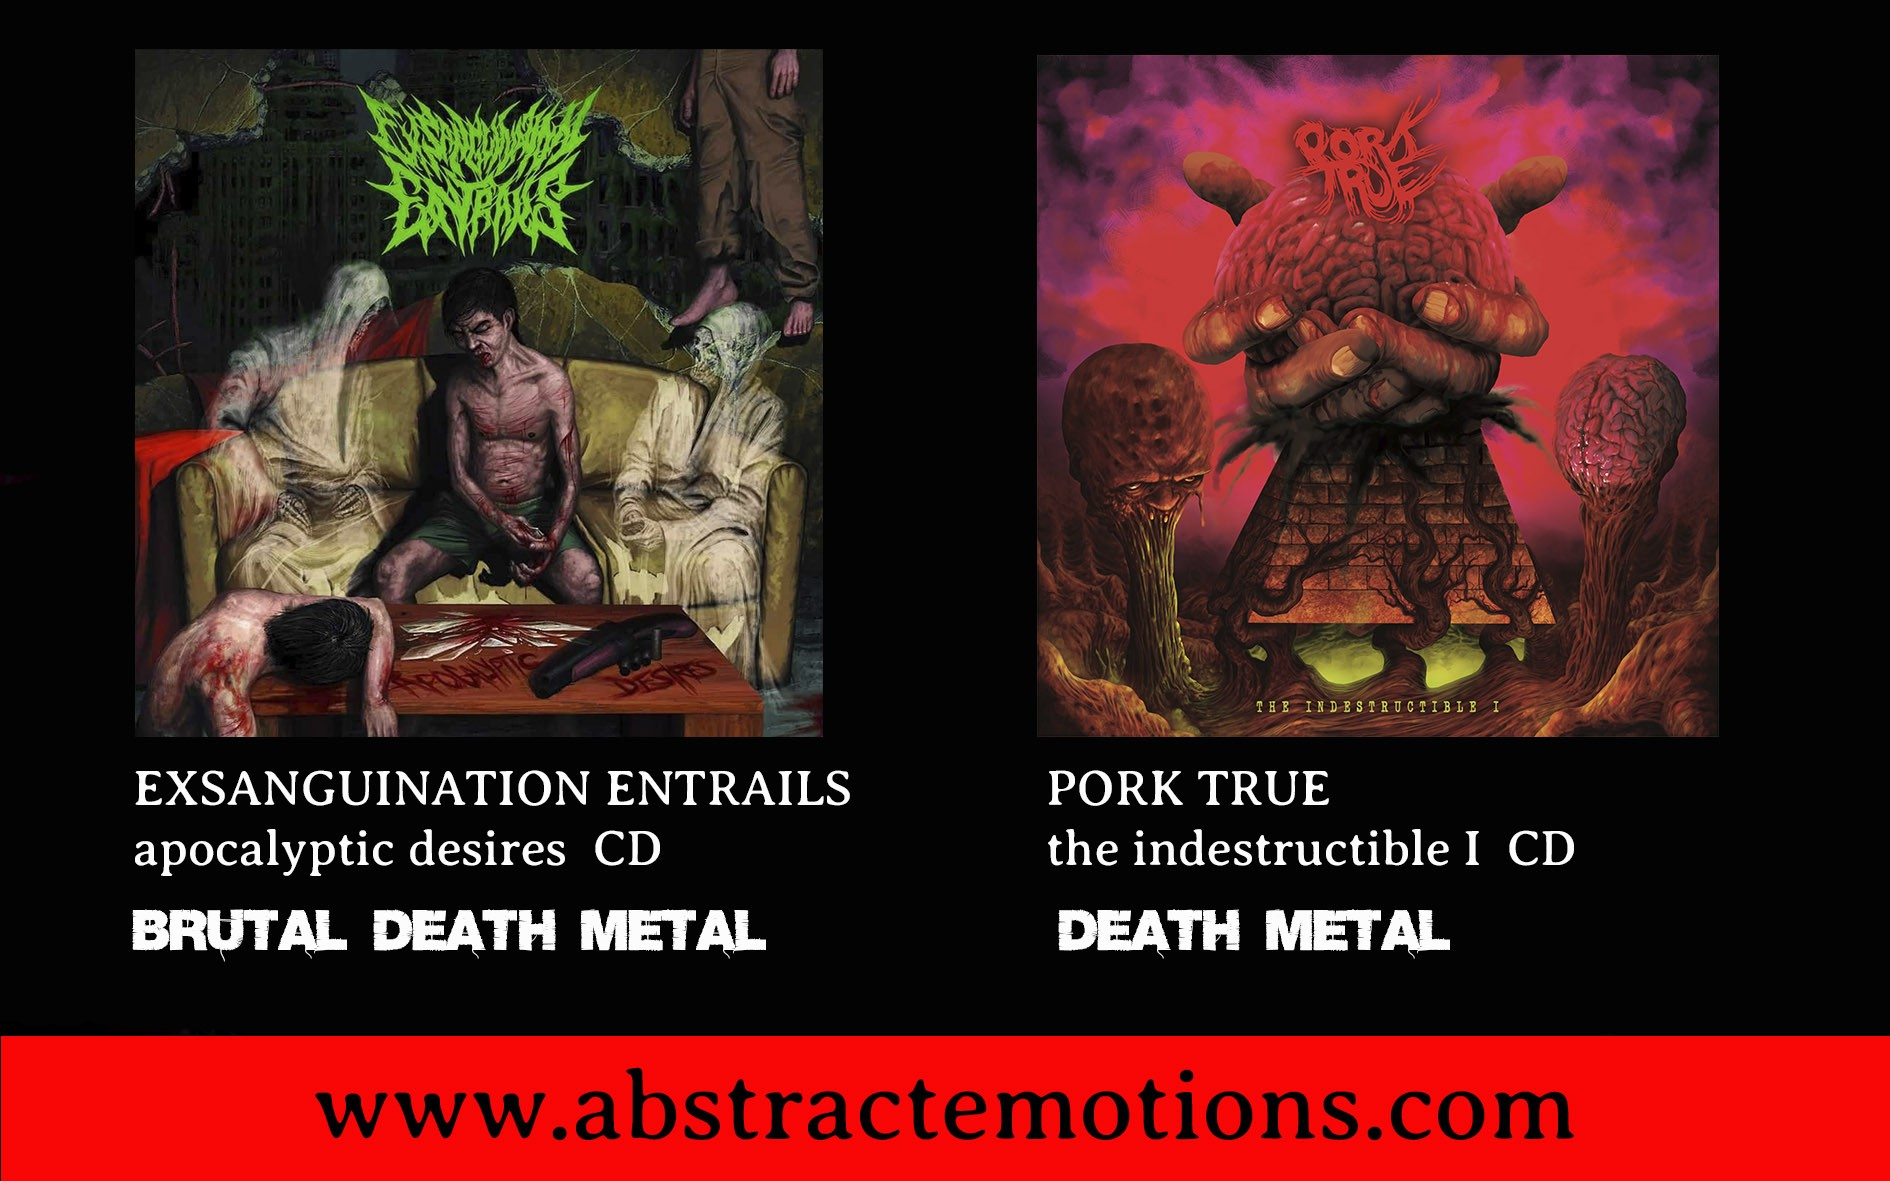 PORK TRUE & EXSANGUINATION ENTRAILS